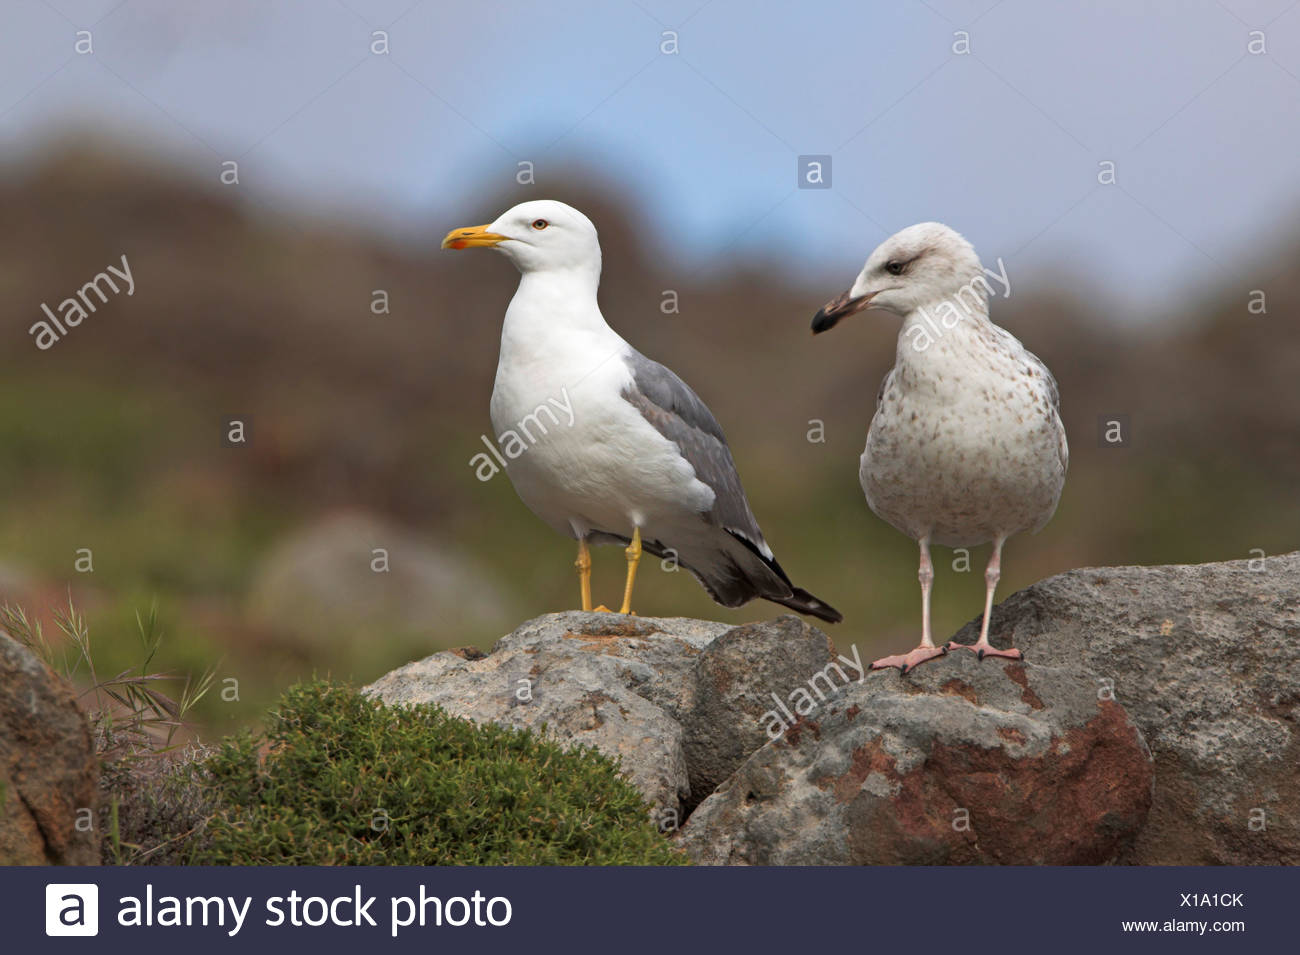 Yellow-legged Gull (Larus michahellis), young and adult bird sitting together on rocks, Greece, Lesbos Stock Photo